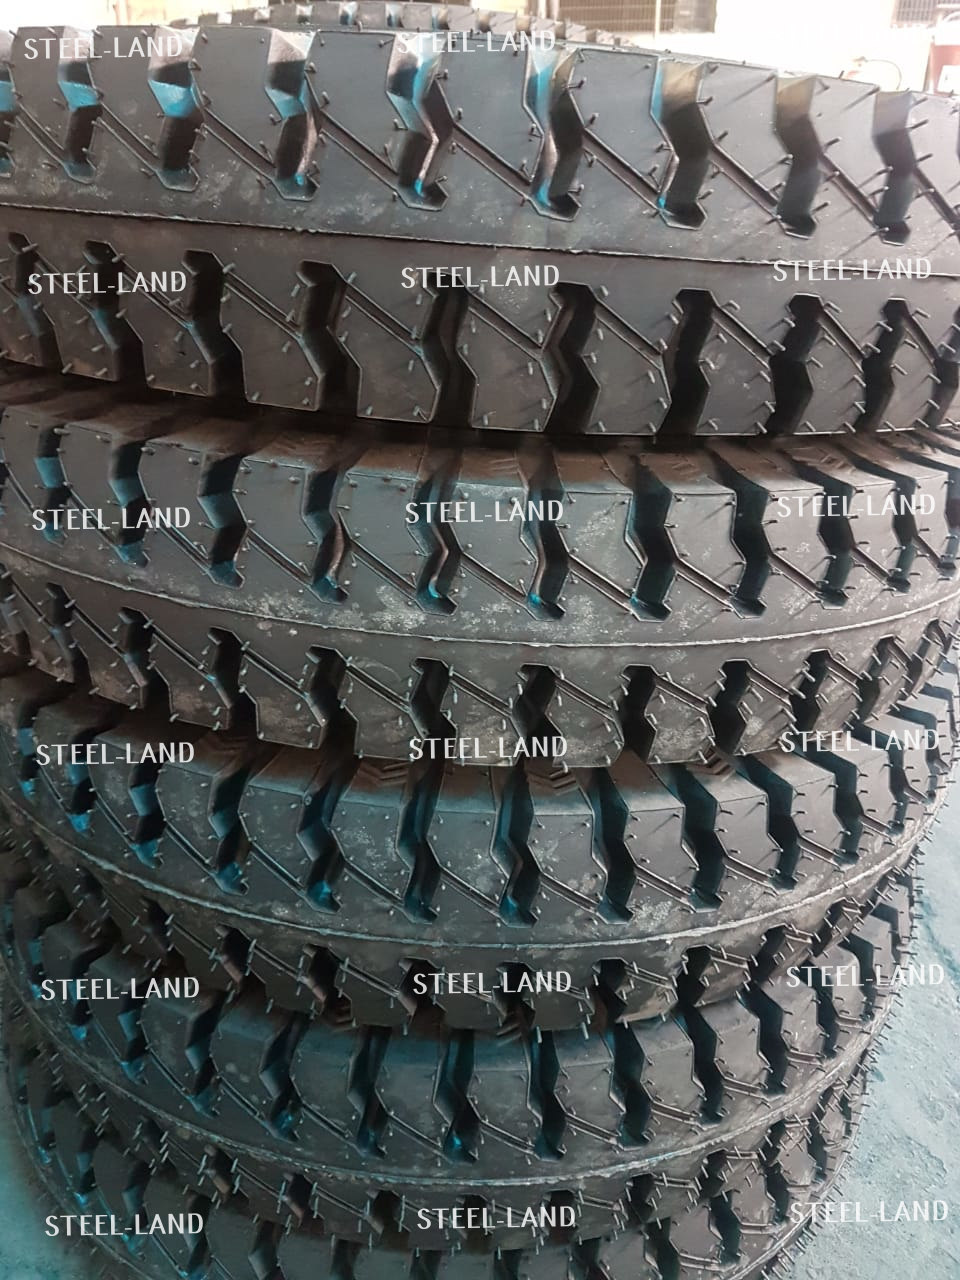 Tyre Tire Tube STEEL LAND www.steellandindustries.com31 Trailer Tanker | Thrasher | Agriculture Part Manufacture